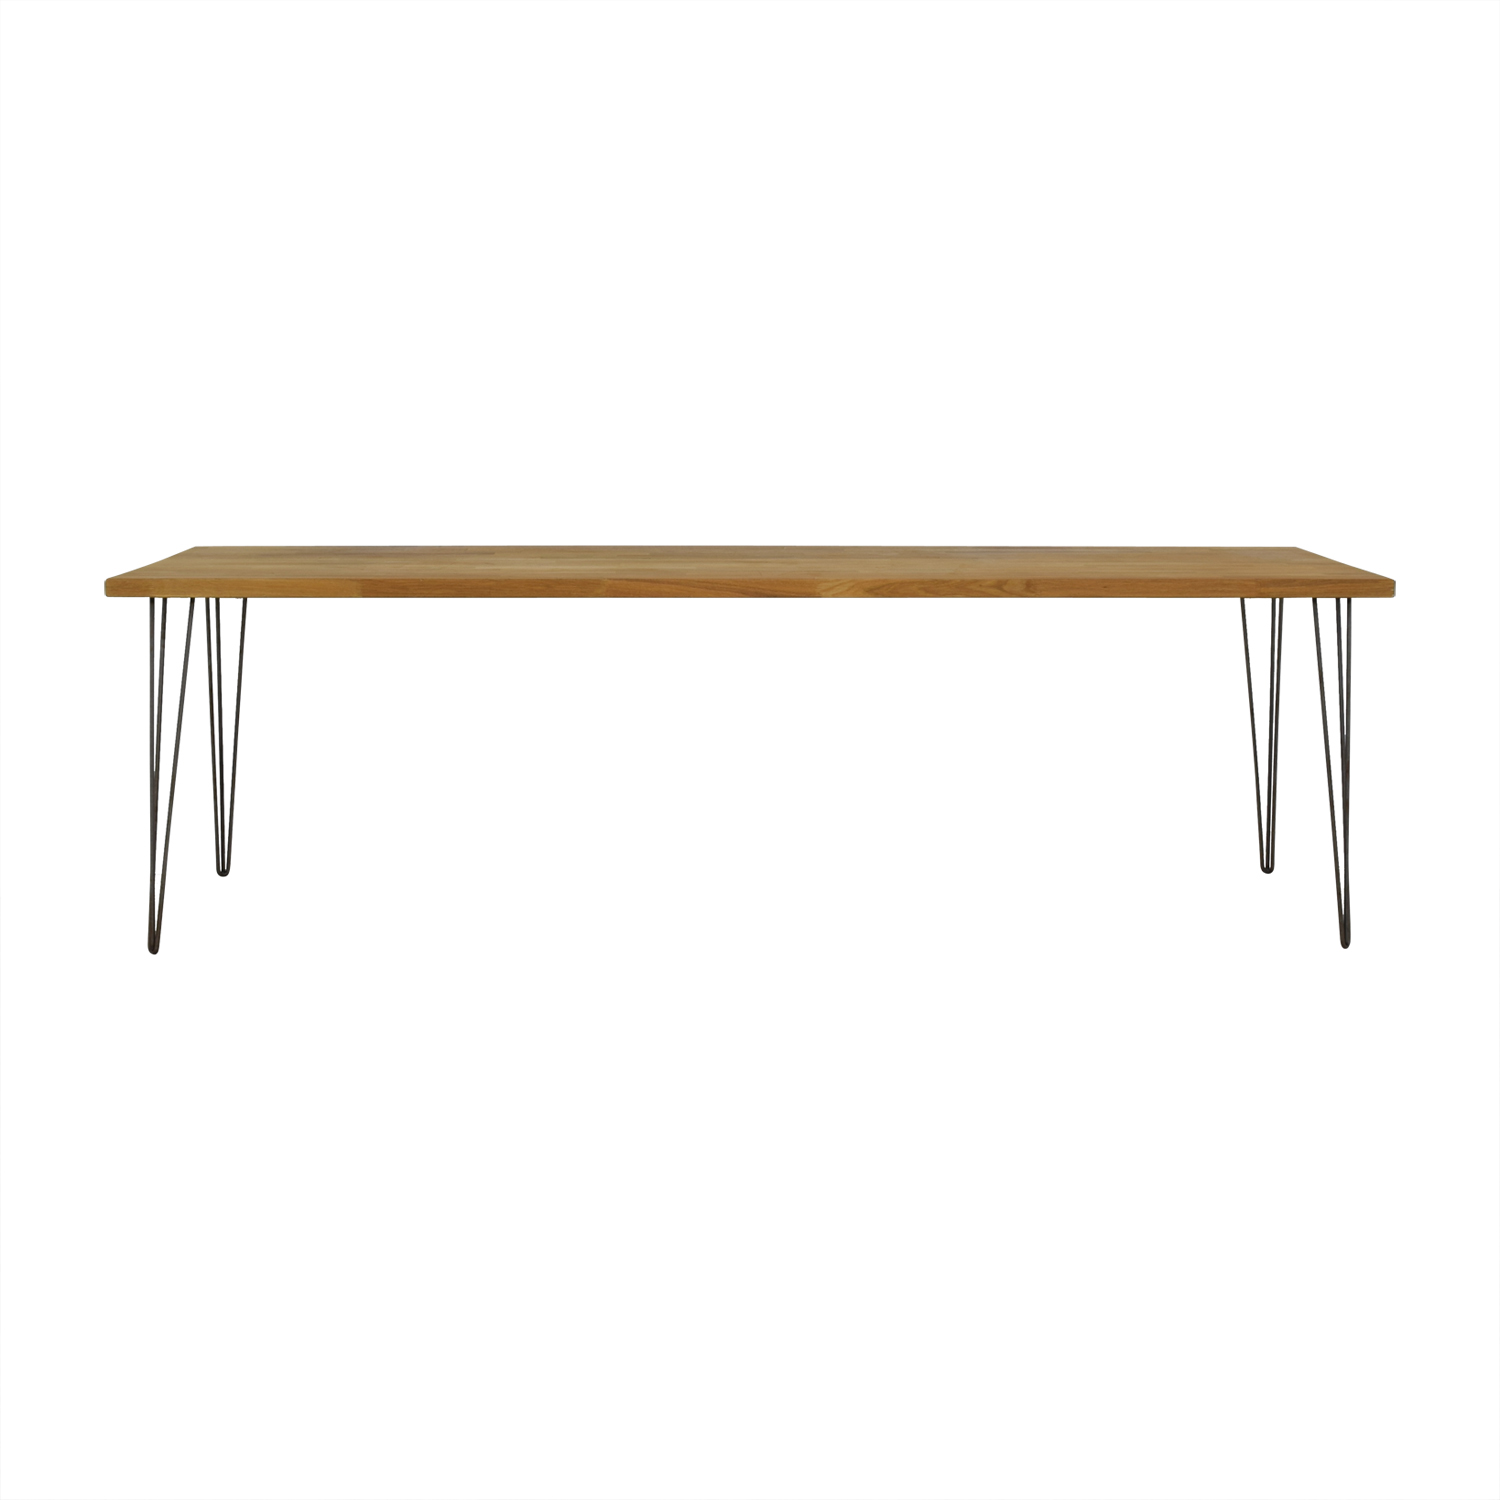 Custom Hazelnut Wood Table with Triangular Steel Legs / Tables